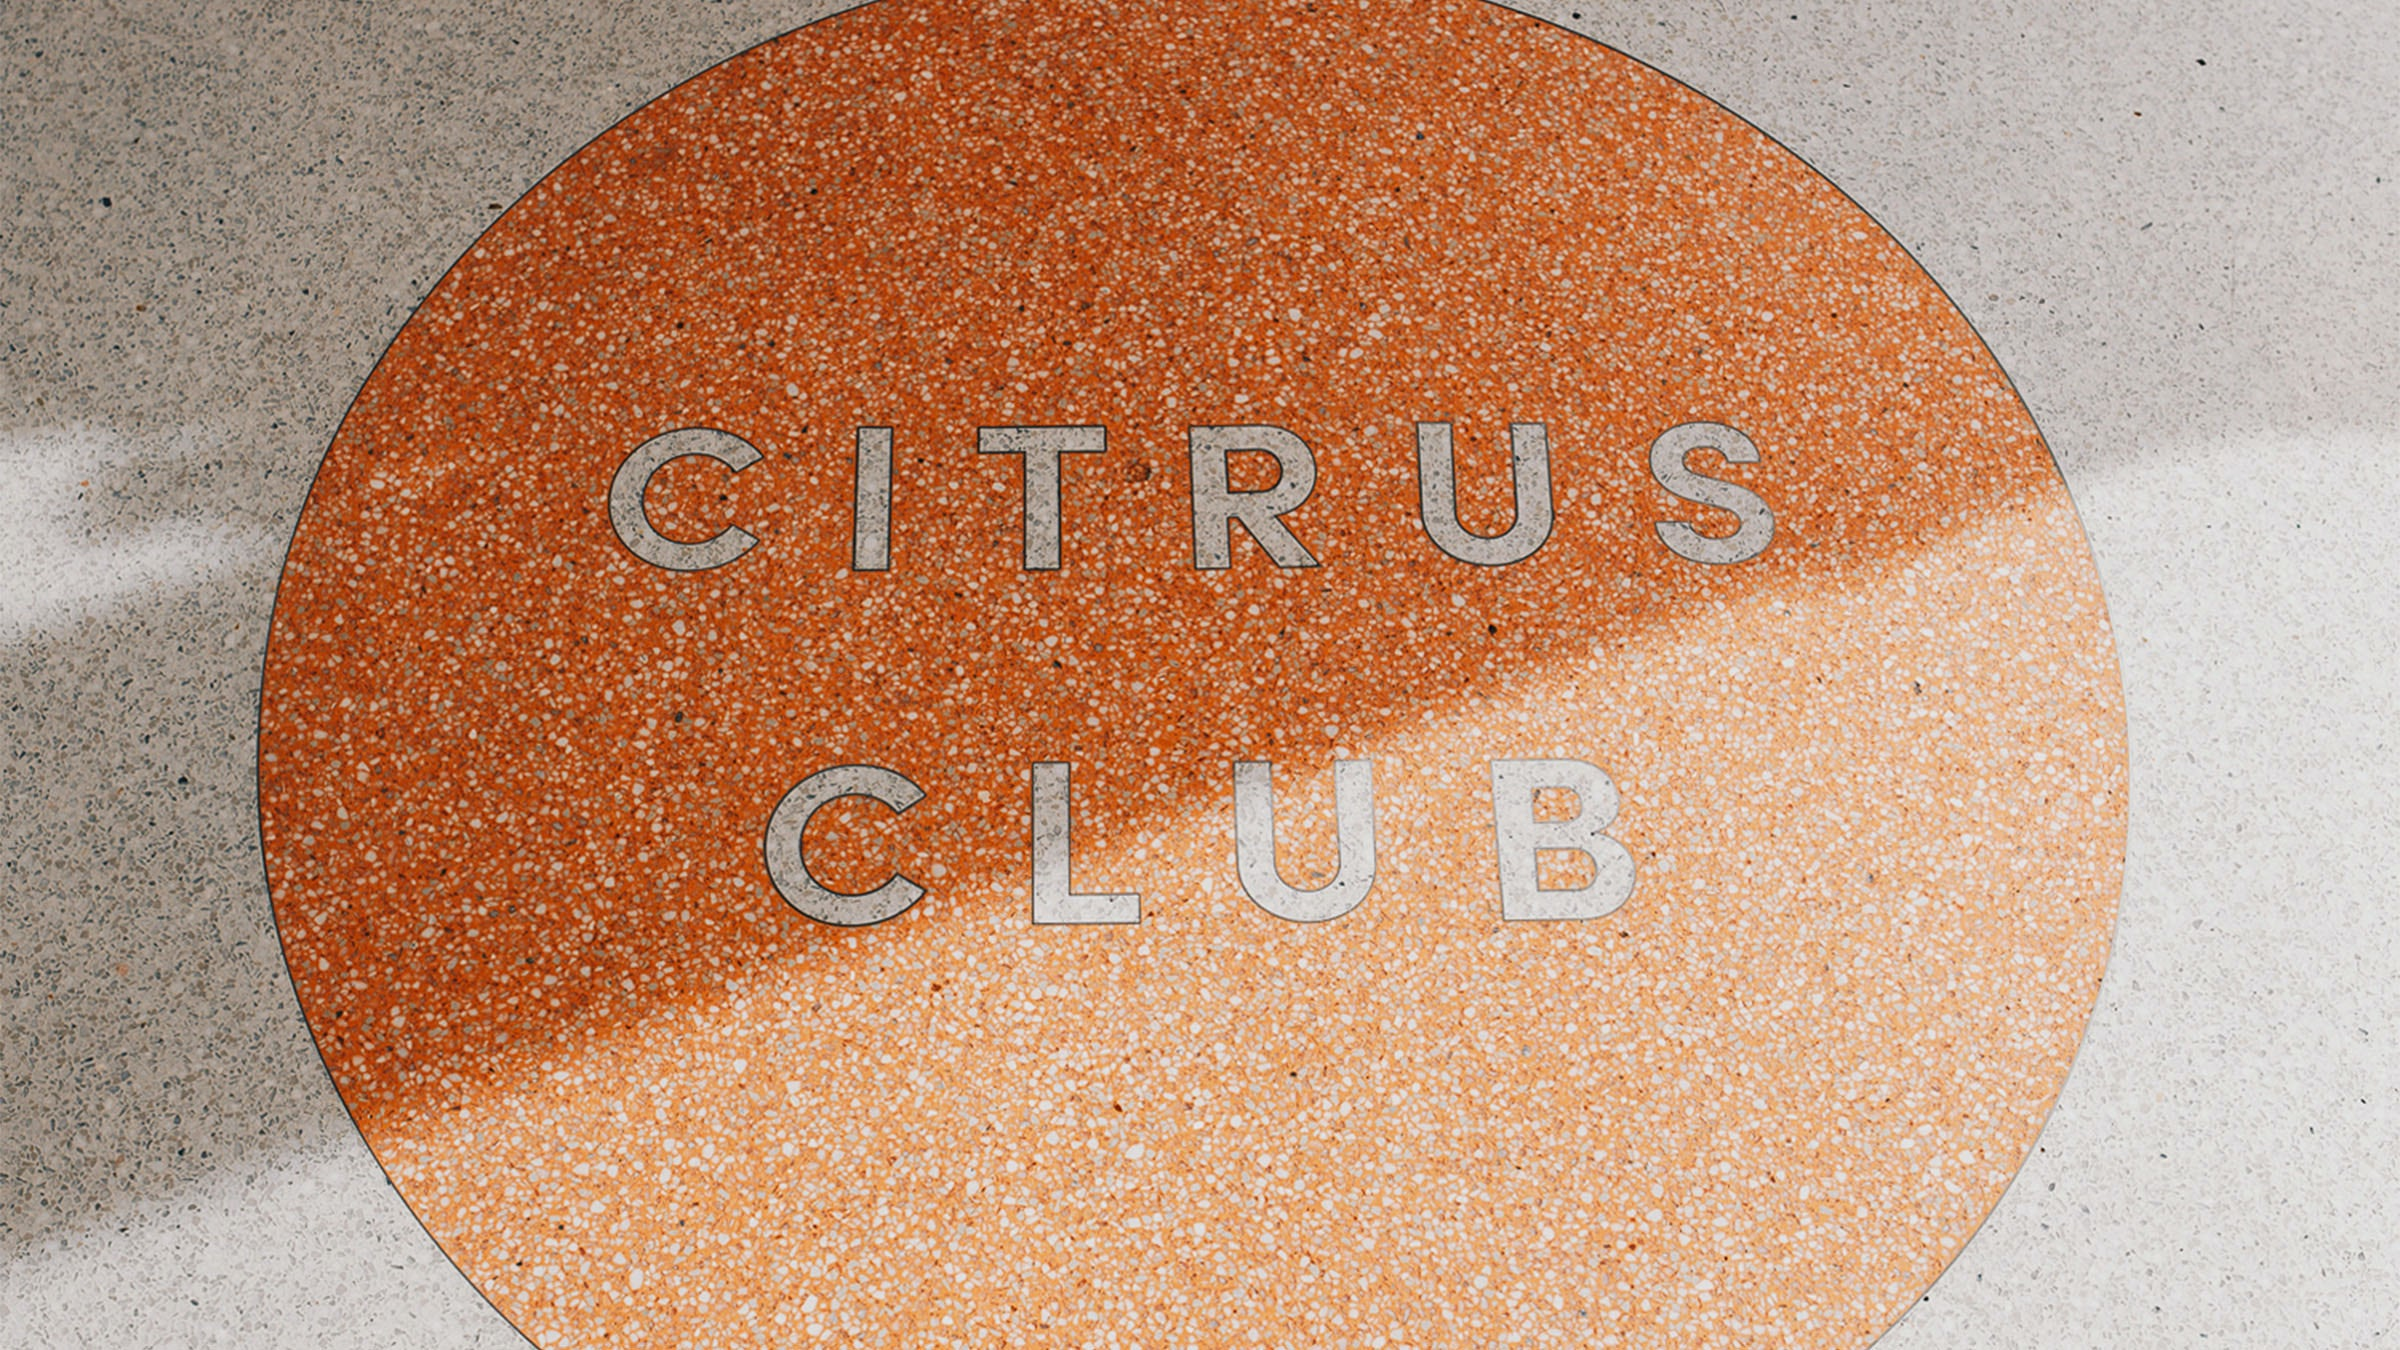 gallery image for The Citrus Club